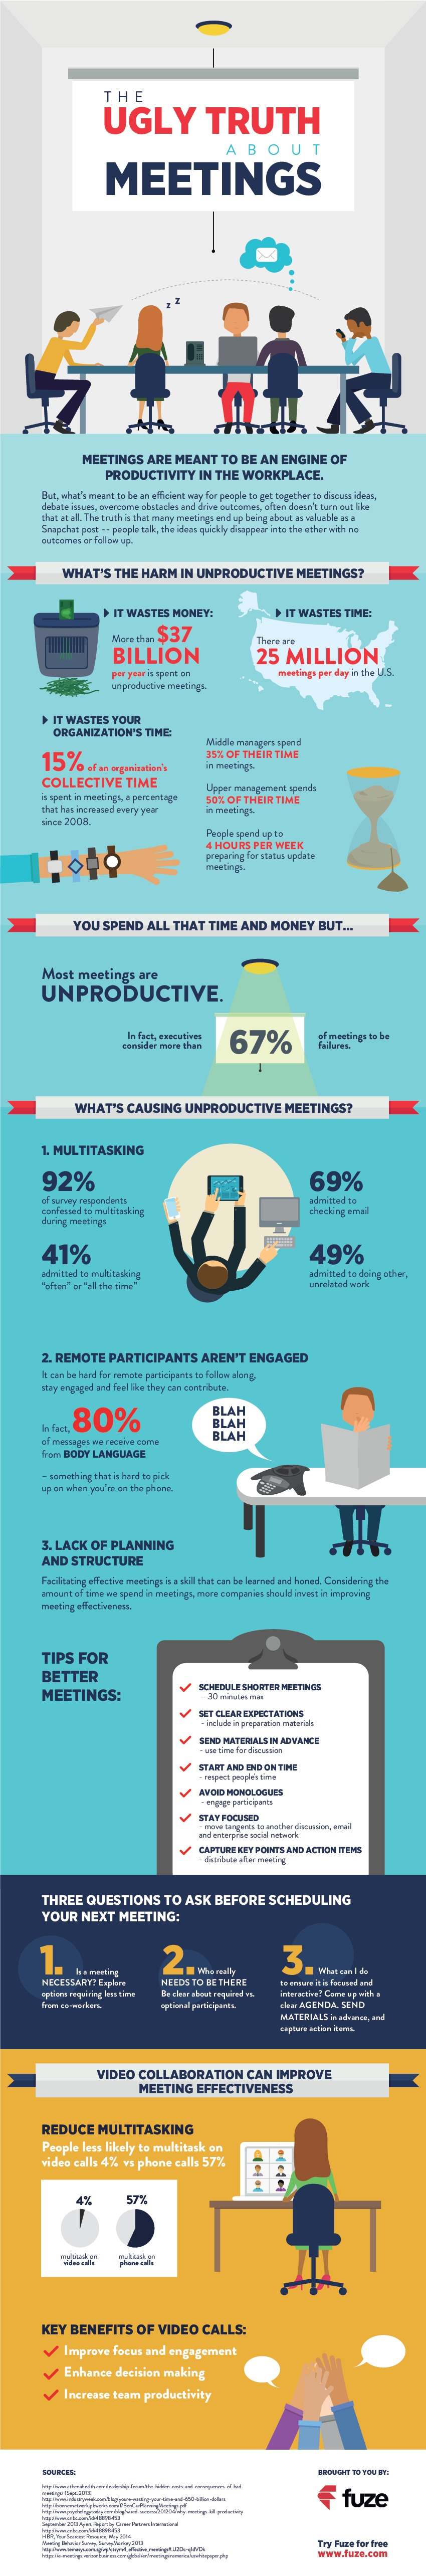 The Ugly Truth About Meetings Infographic